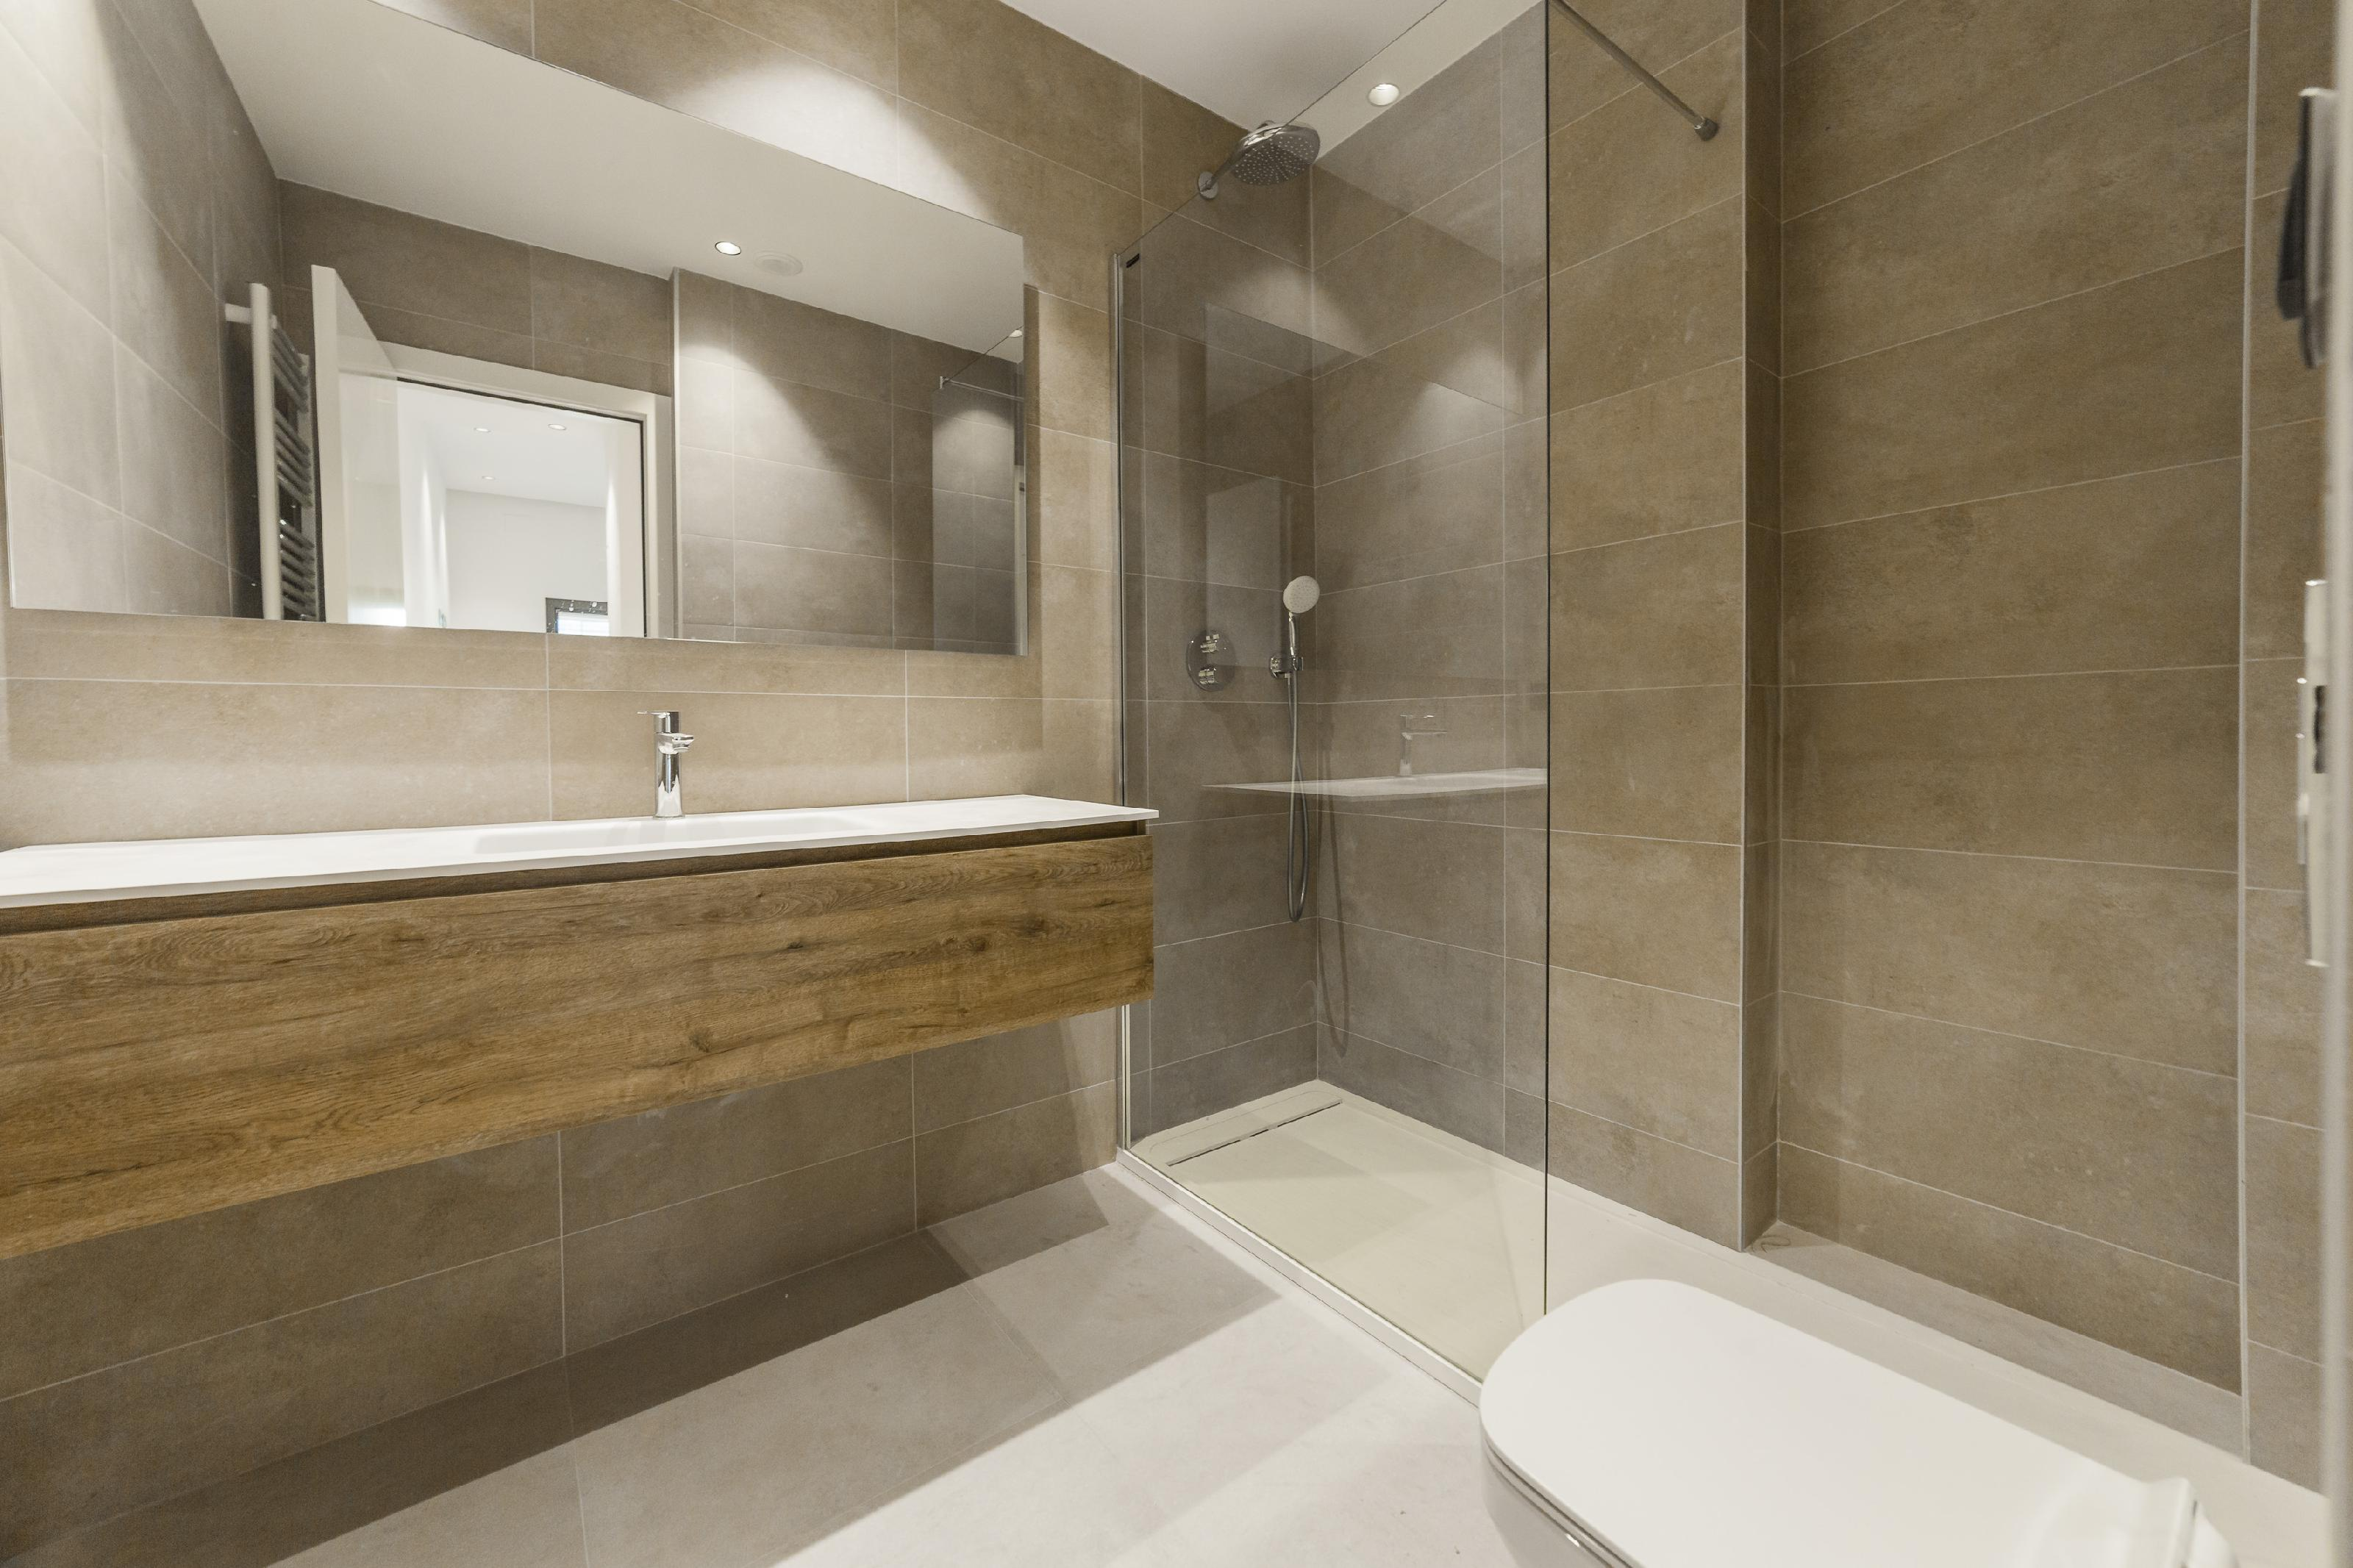 182176 Apartment for sale in Eixample, Old Left Eixample 18